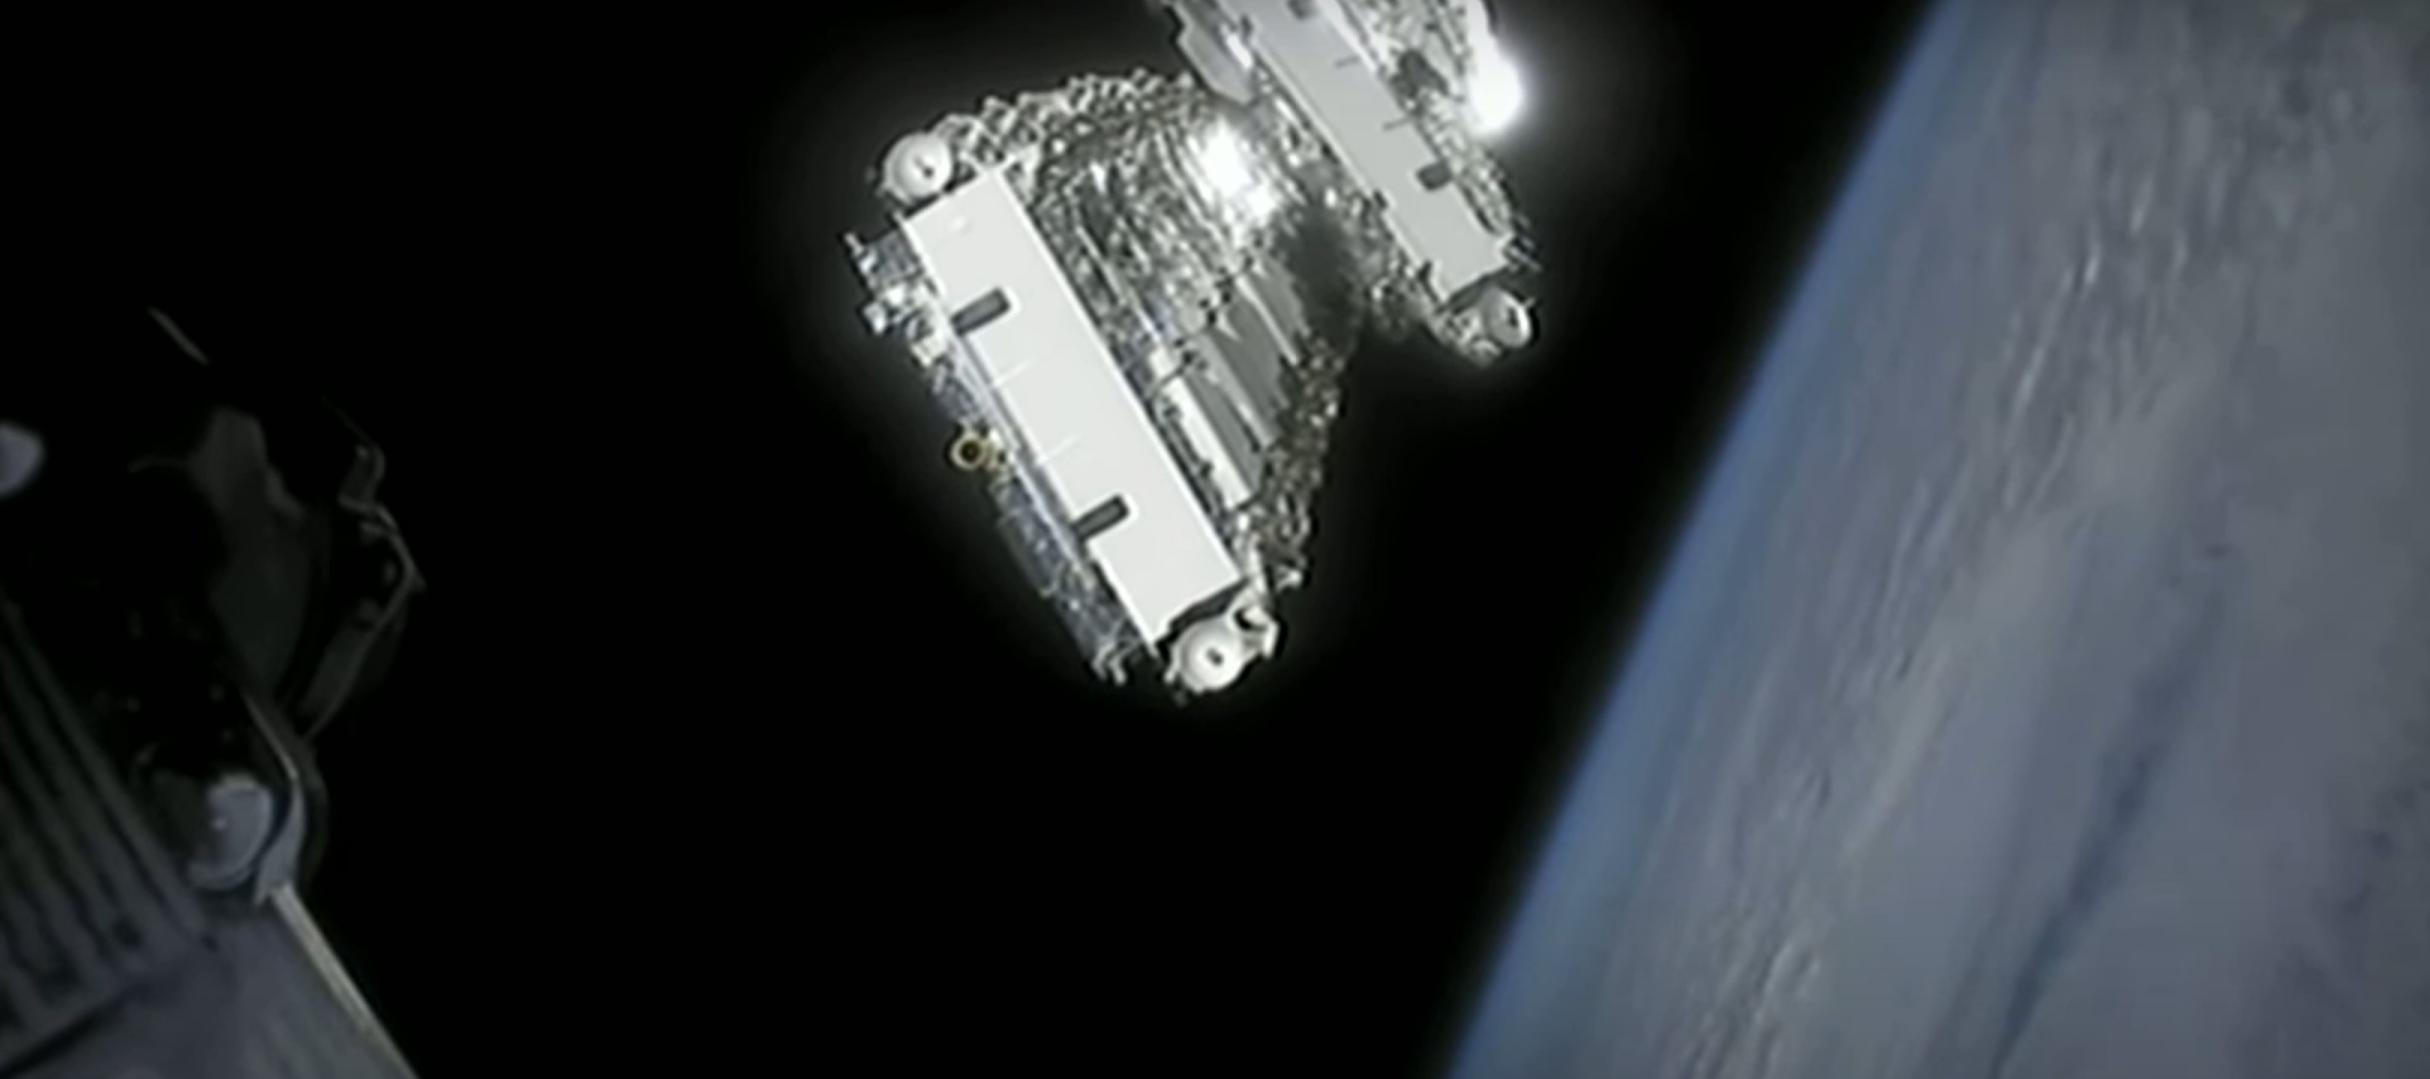 Falcon 9 Starlink 6 042220 (SpaceX) webcast 11 (c)